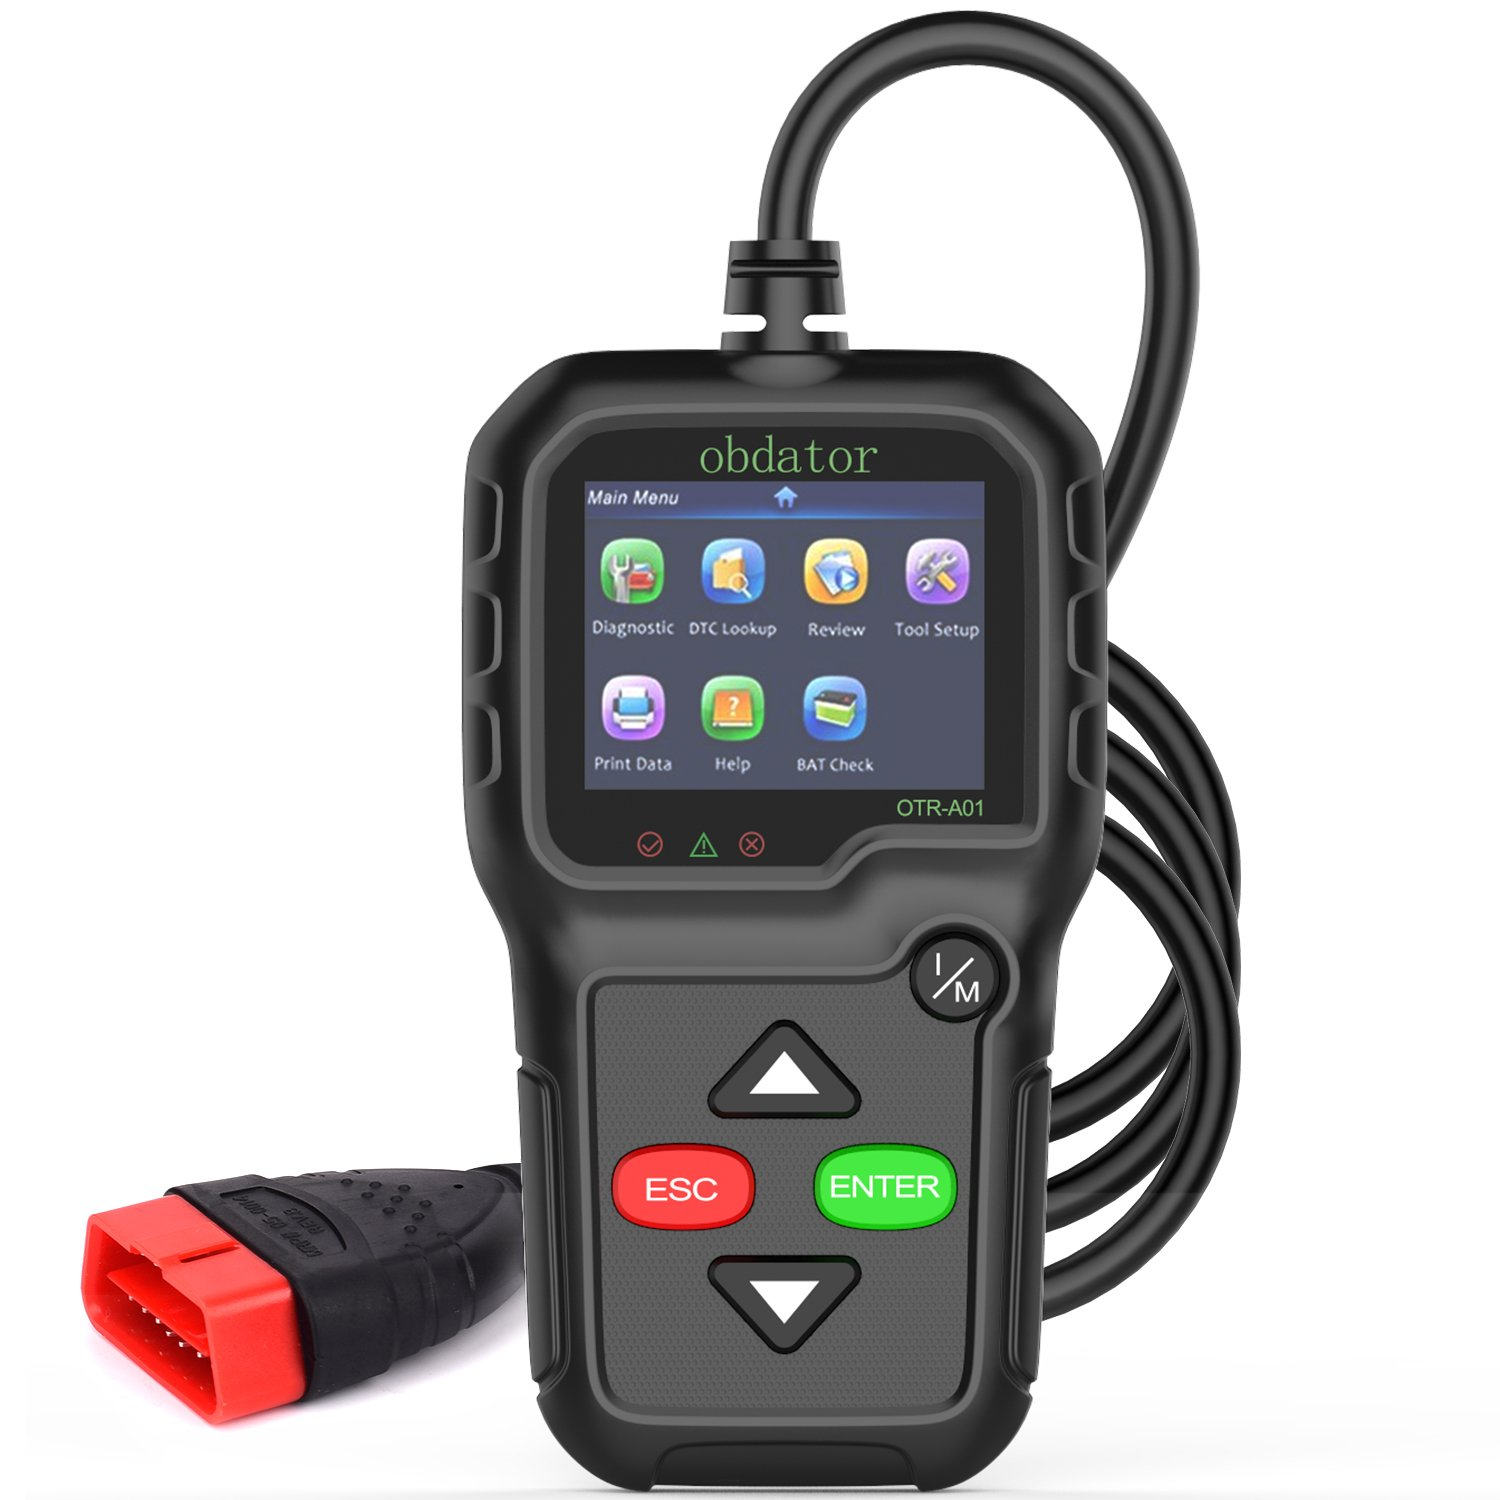 obdator OBD2 OBD Scanner Code Reader Auto Code Reader Professional Enhanced OBDII Check Engine Light Diagnostic Scan Tool